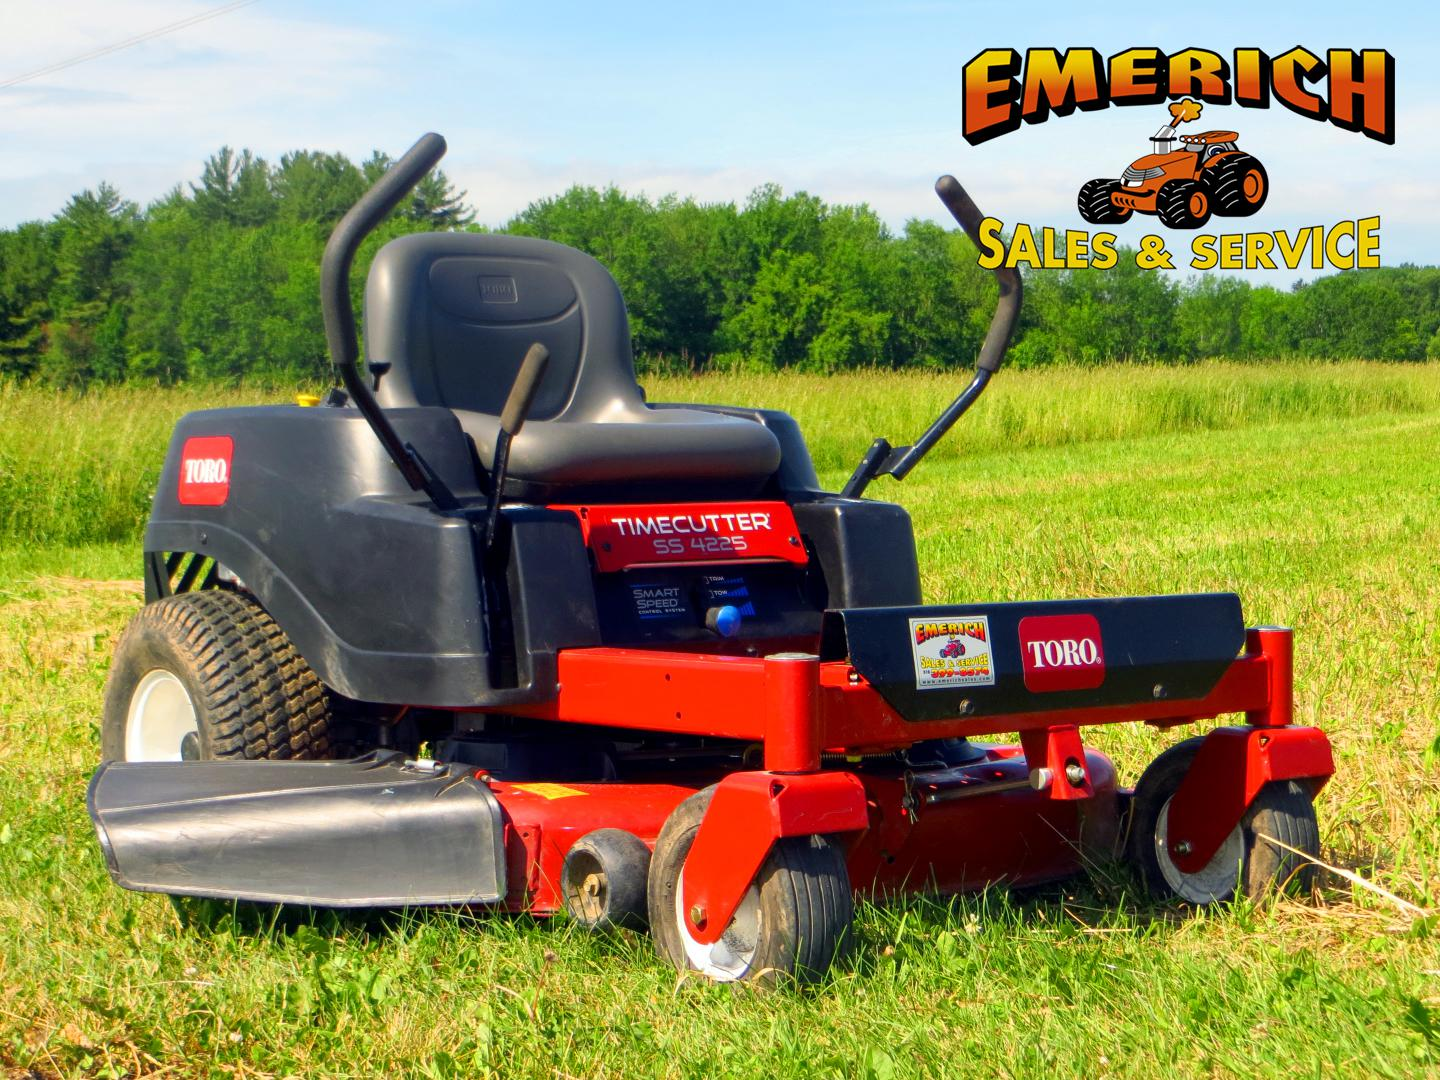 Toro timecutter z and wheel horse residential duty riding mowers are - In Stock